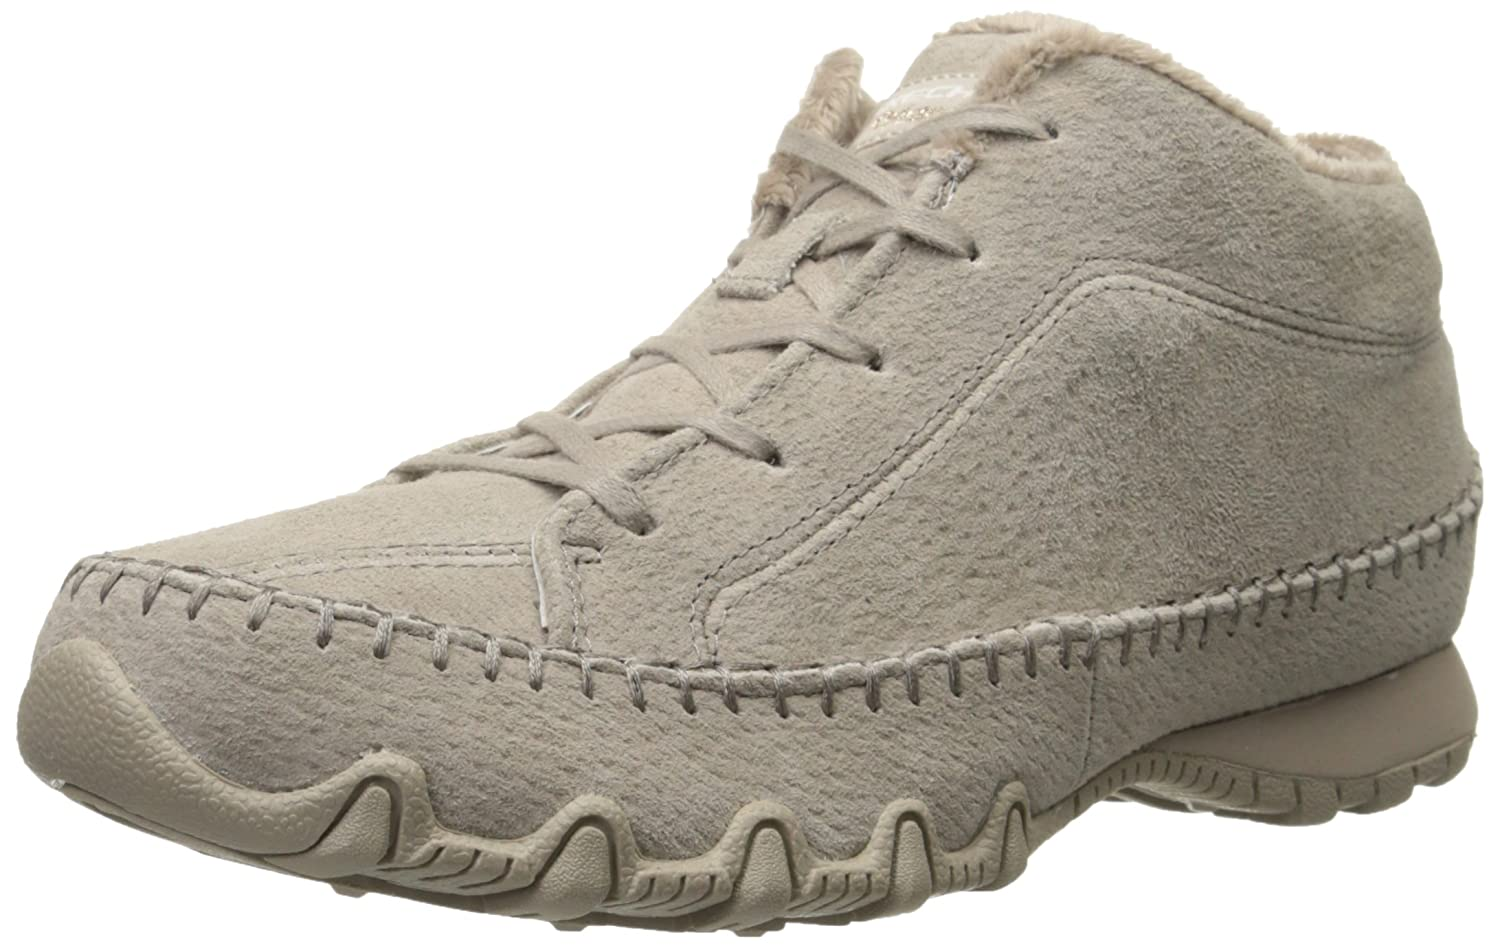 Skechers Women's Bikers Totem Pole Chukka Boot Skechers USA Footwear Womens 49013